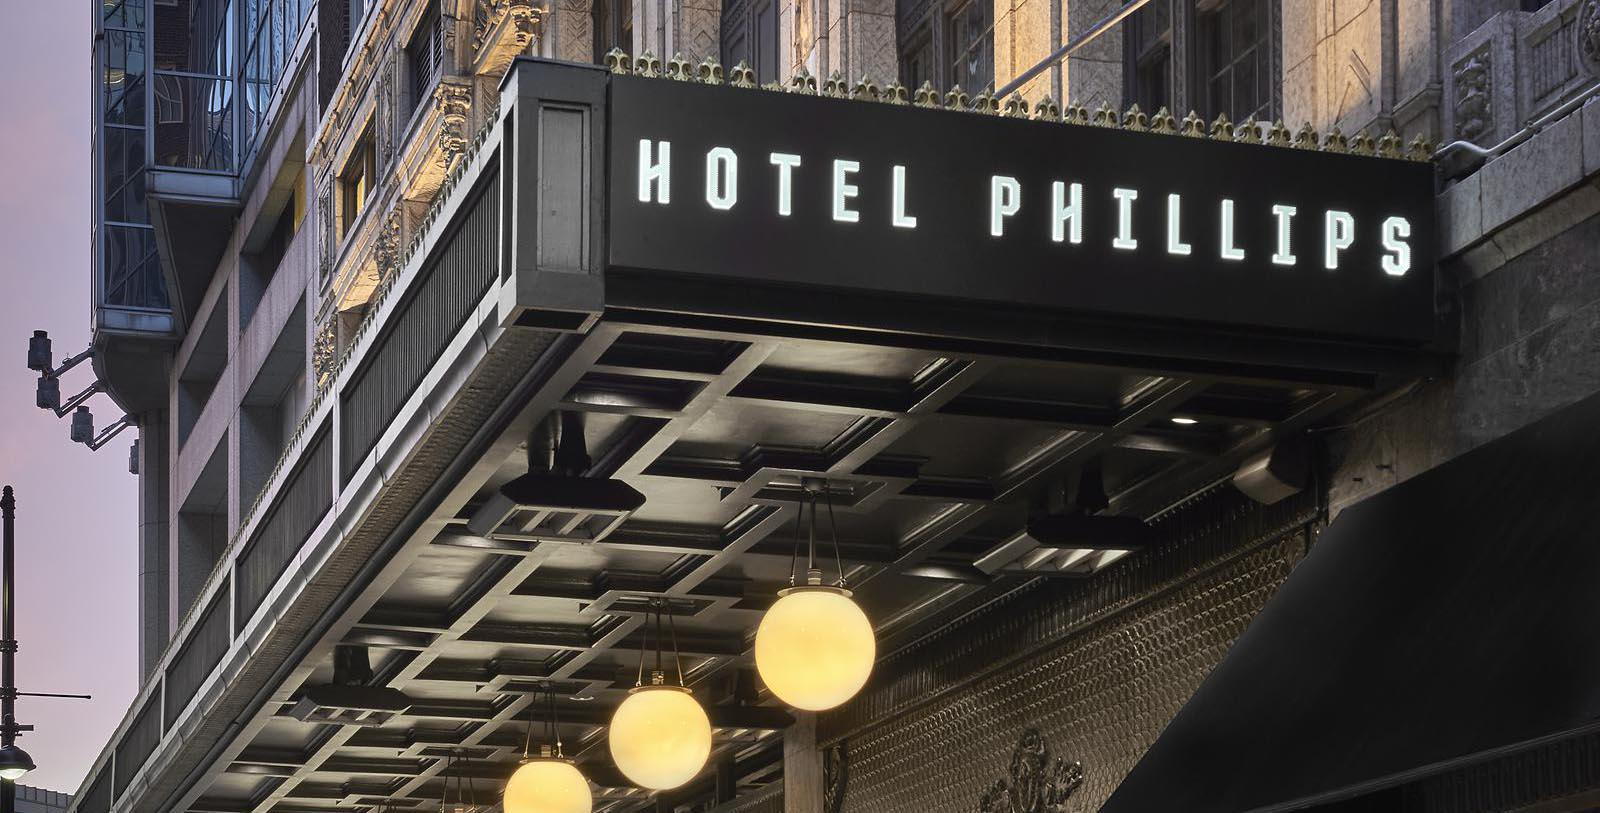 Image of Exterior Marquee, Hotel Phillips Kansas City, Missouri, 1931, Curio Collection by Hilton, Member of Historic Hotels of America, Overview